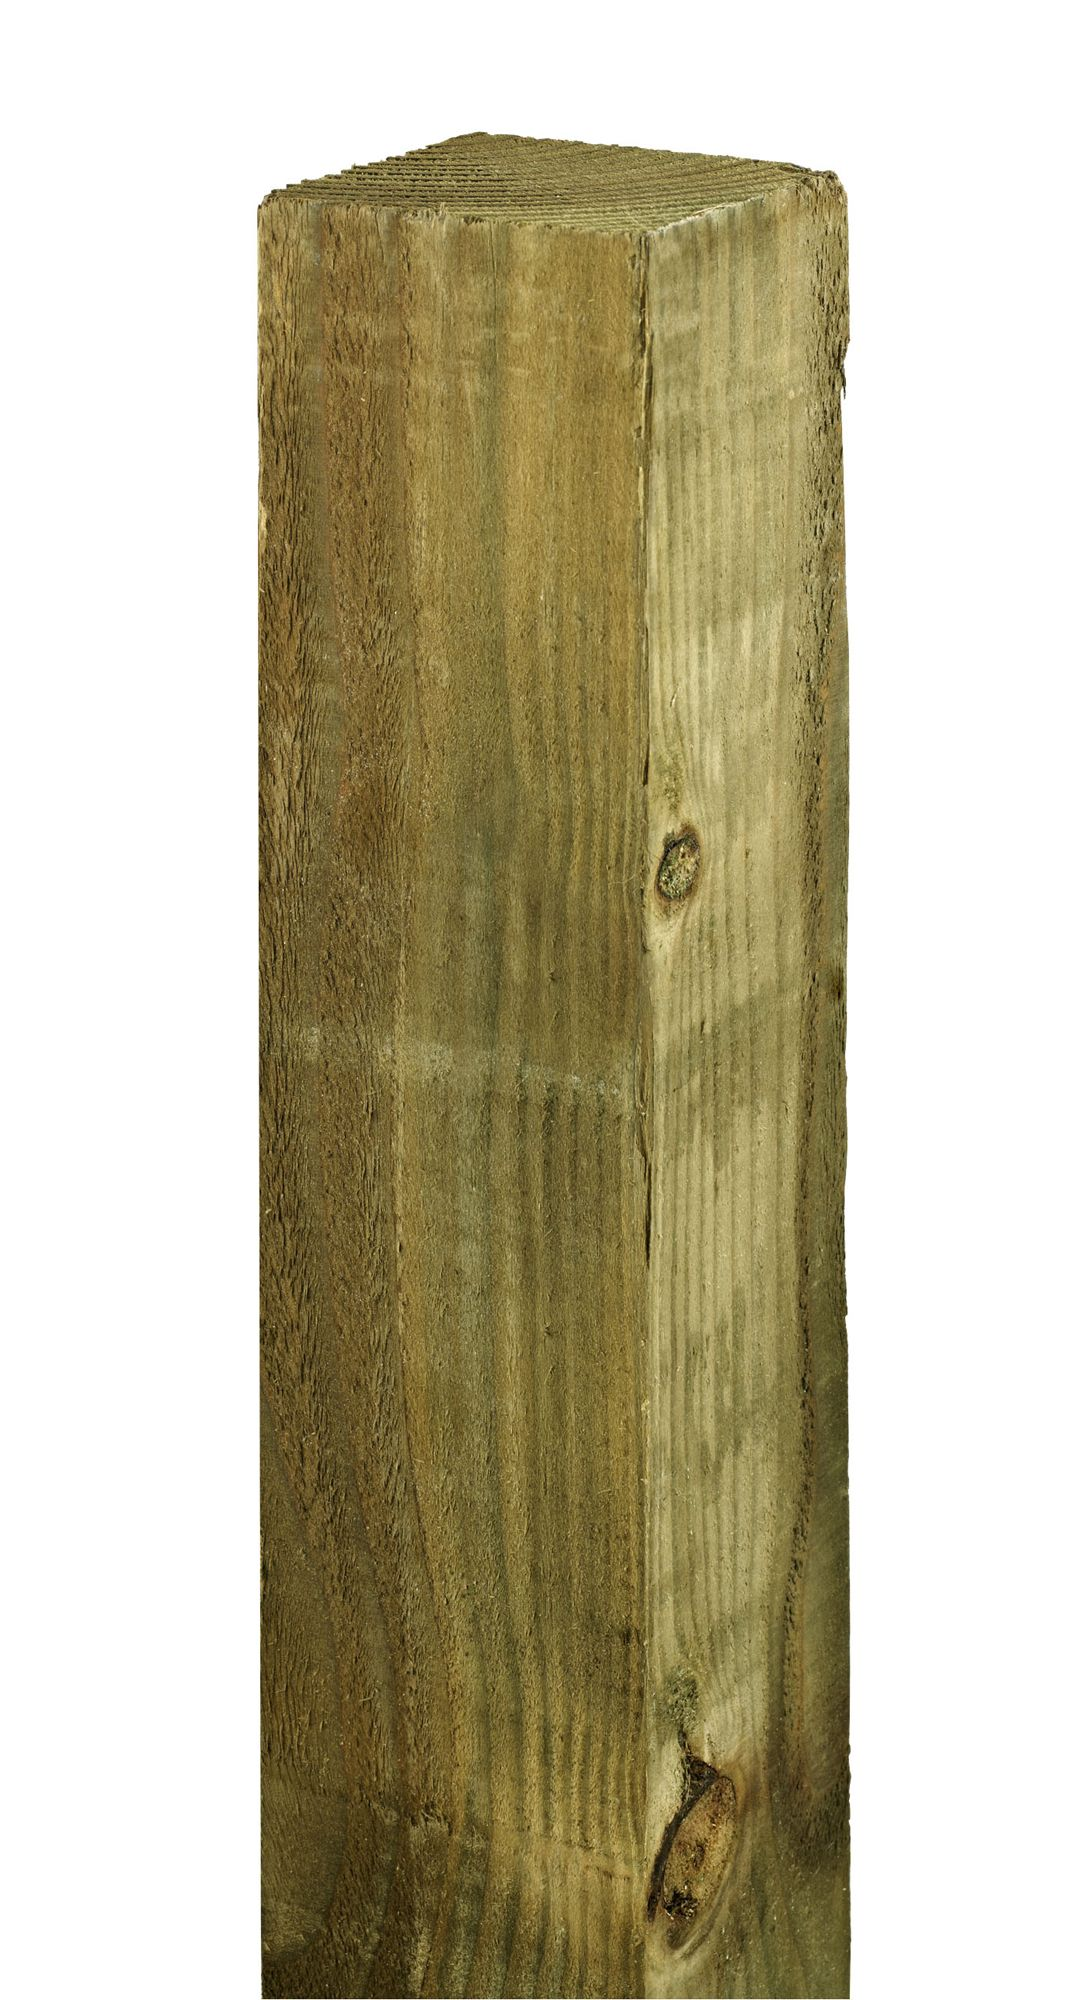 Blooma Timber Fence Post H 2 4m W 75mm Departments